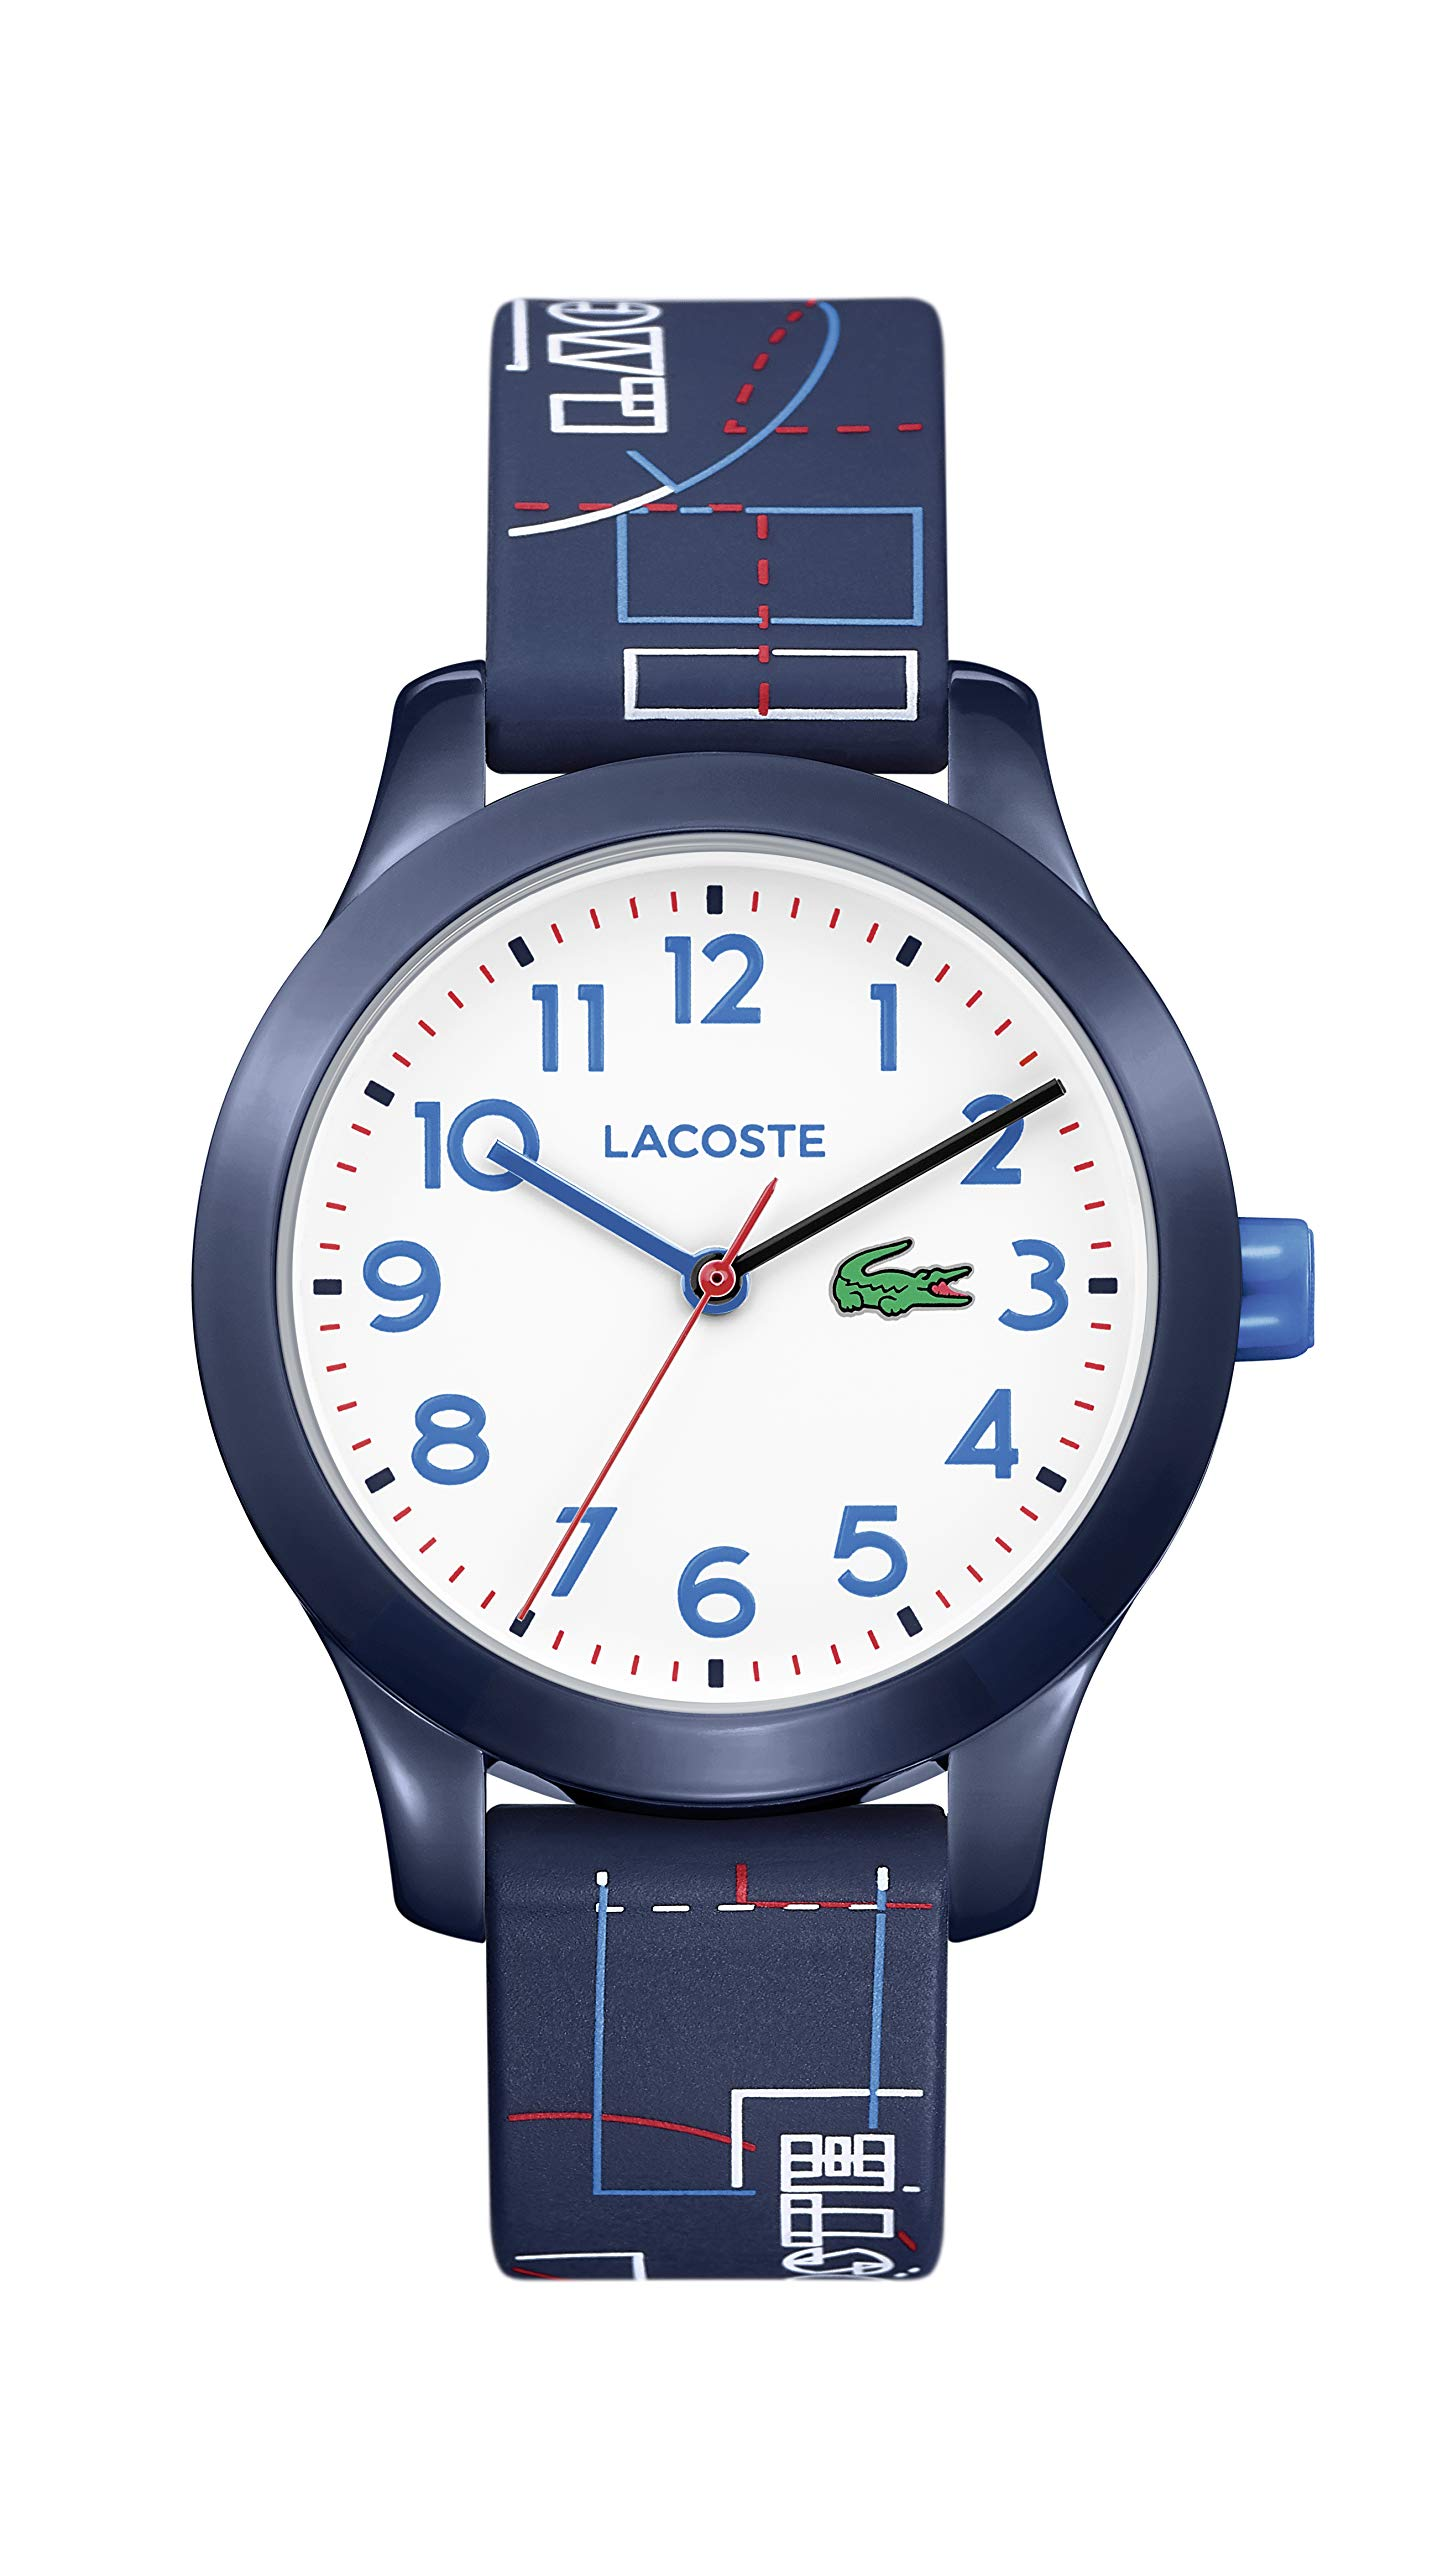 Lacoste Kids 12.12, Quartz TR-90 and Rubber Strap Casual Watch, Blue, Unisex, 2030008 by Lacoste